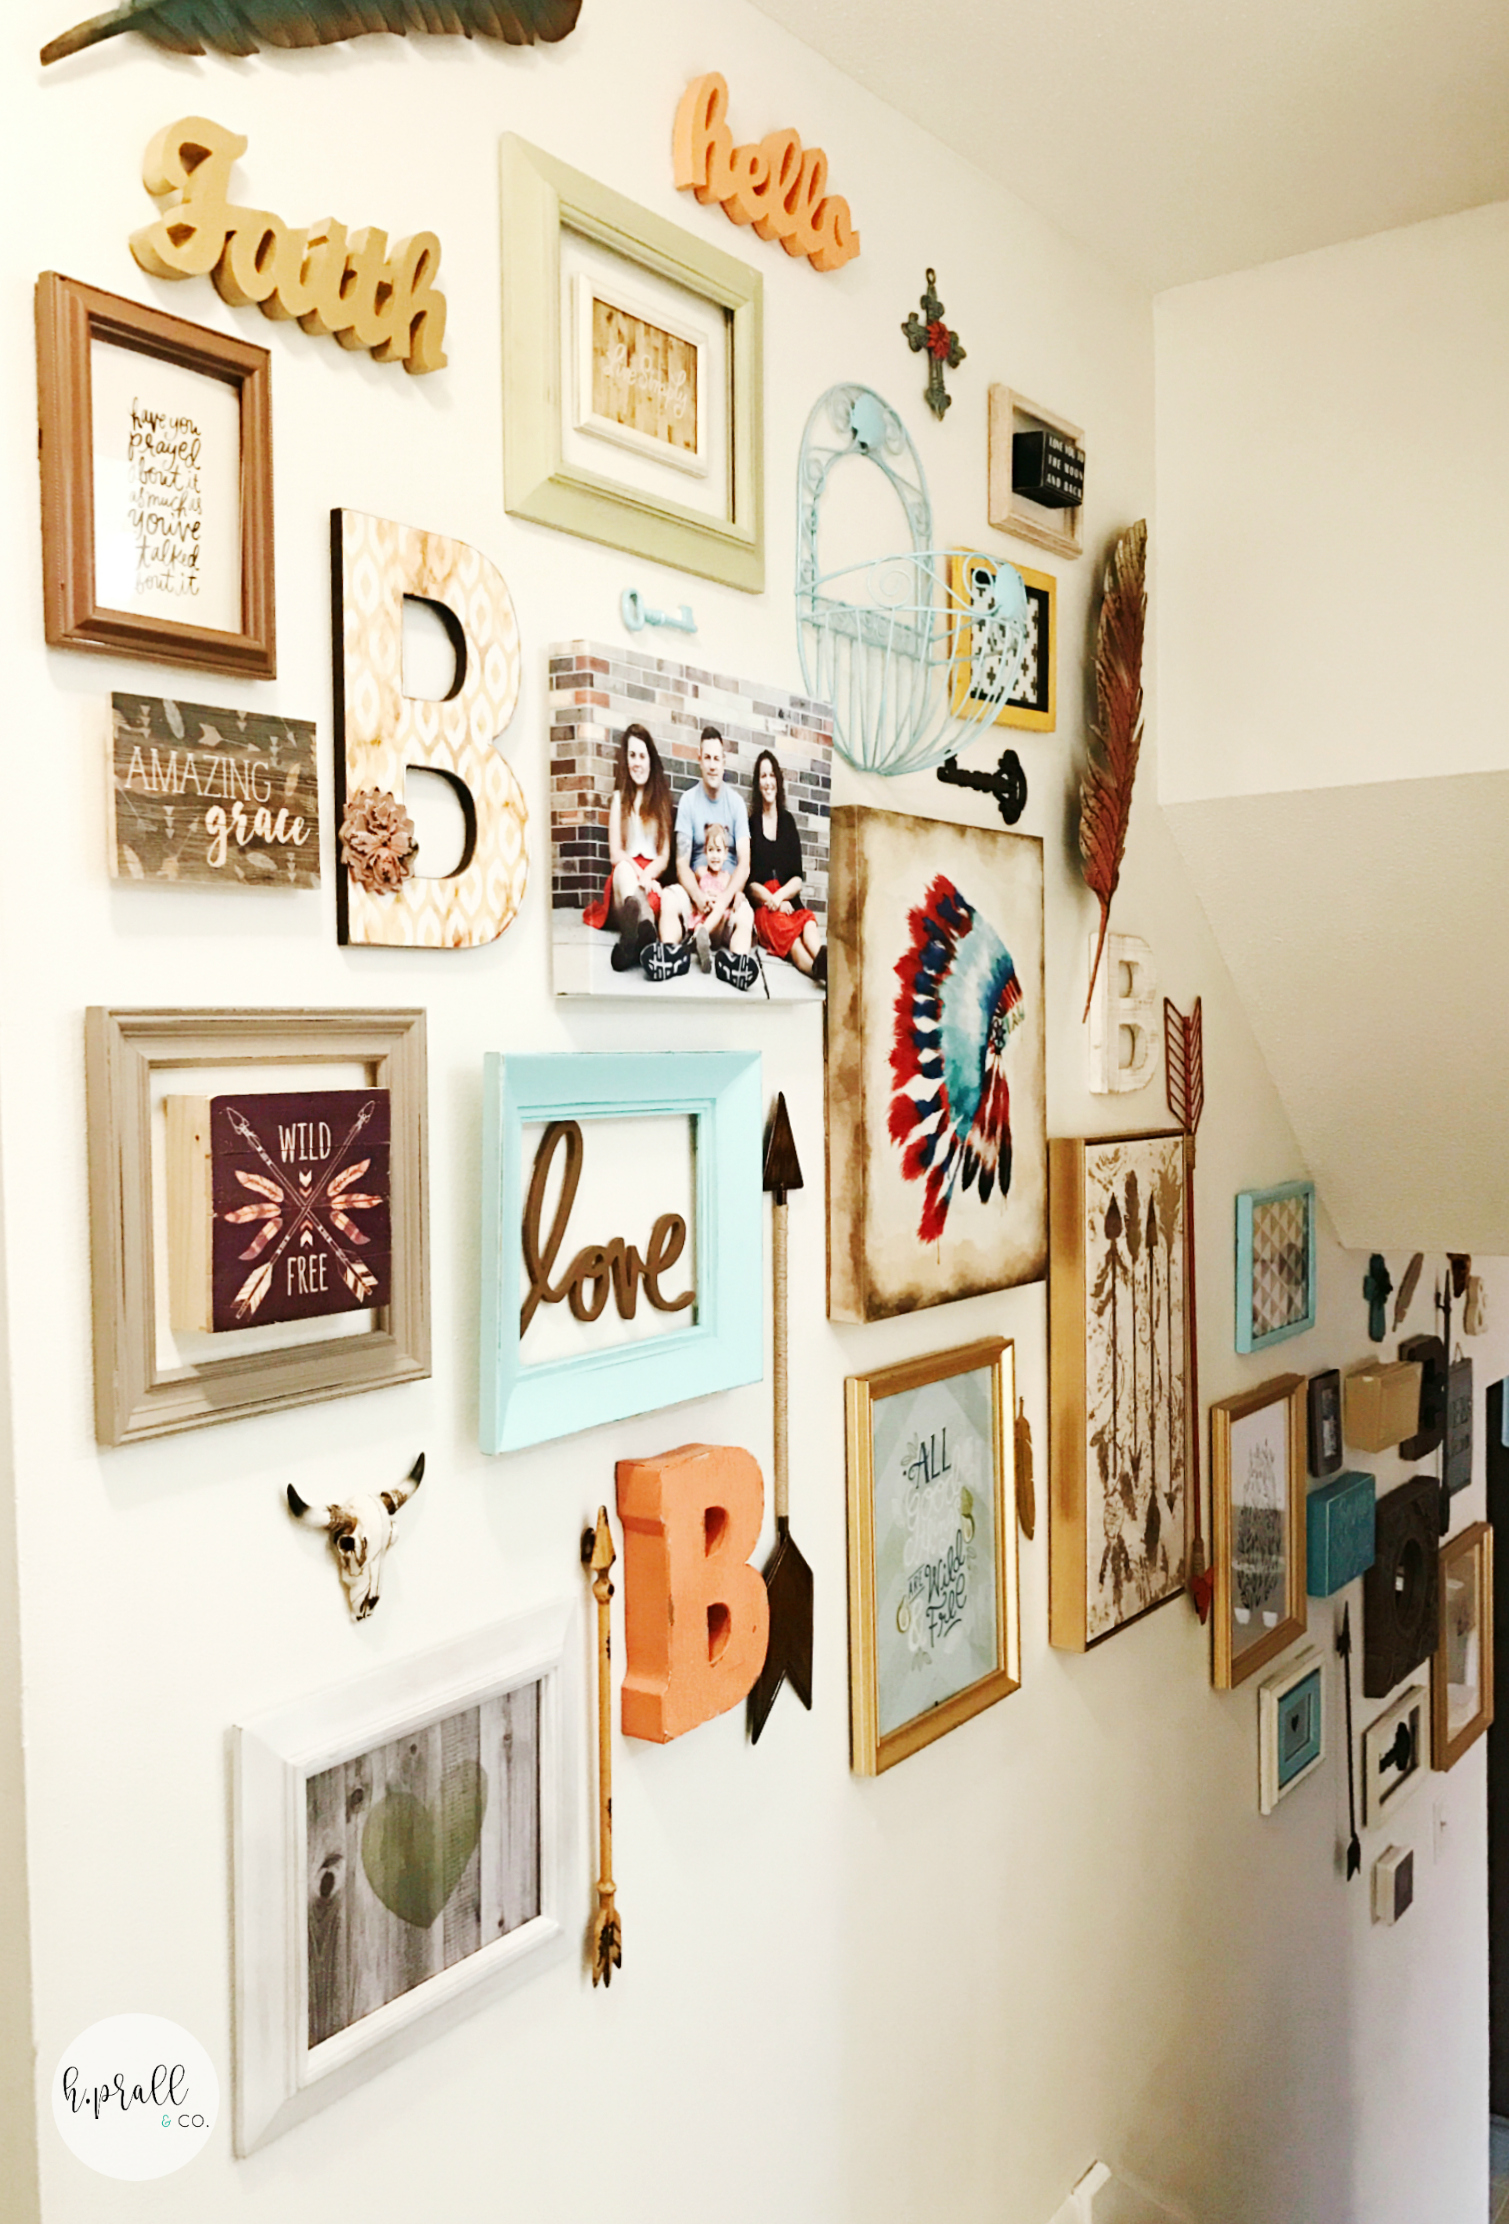 Gallery wall design over a staircase by H.Prall & Co.